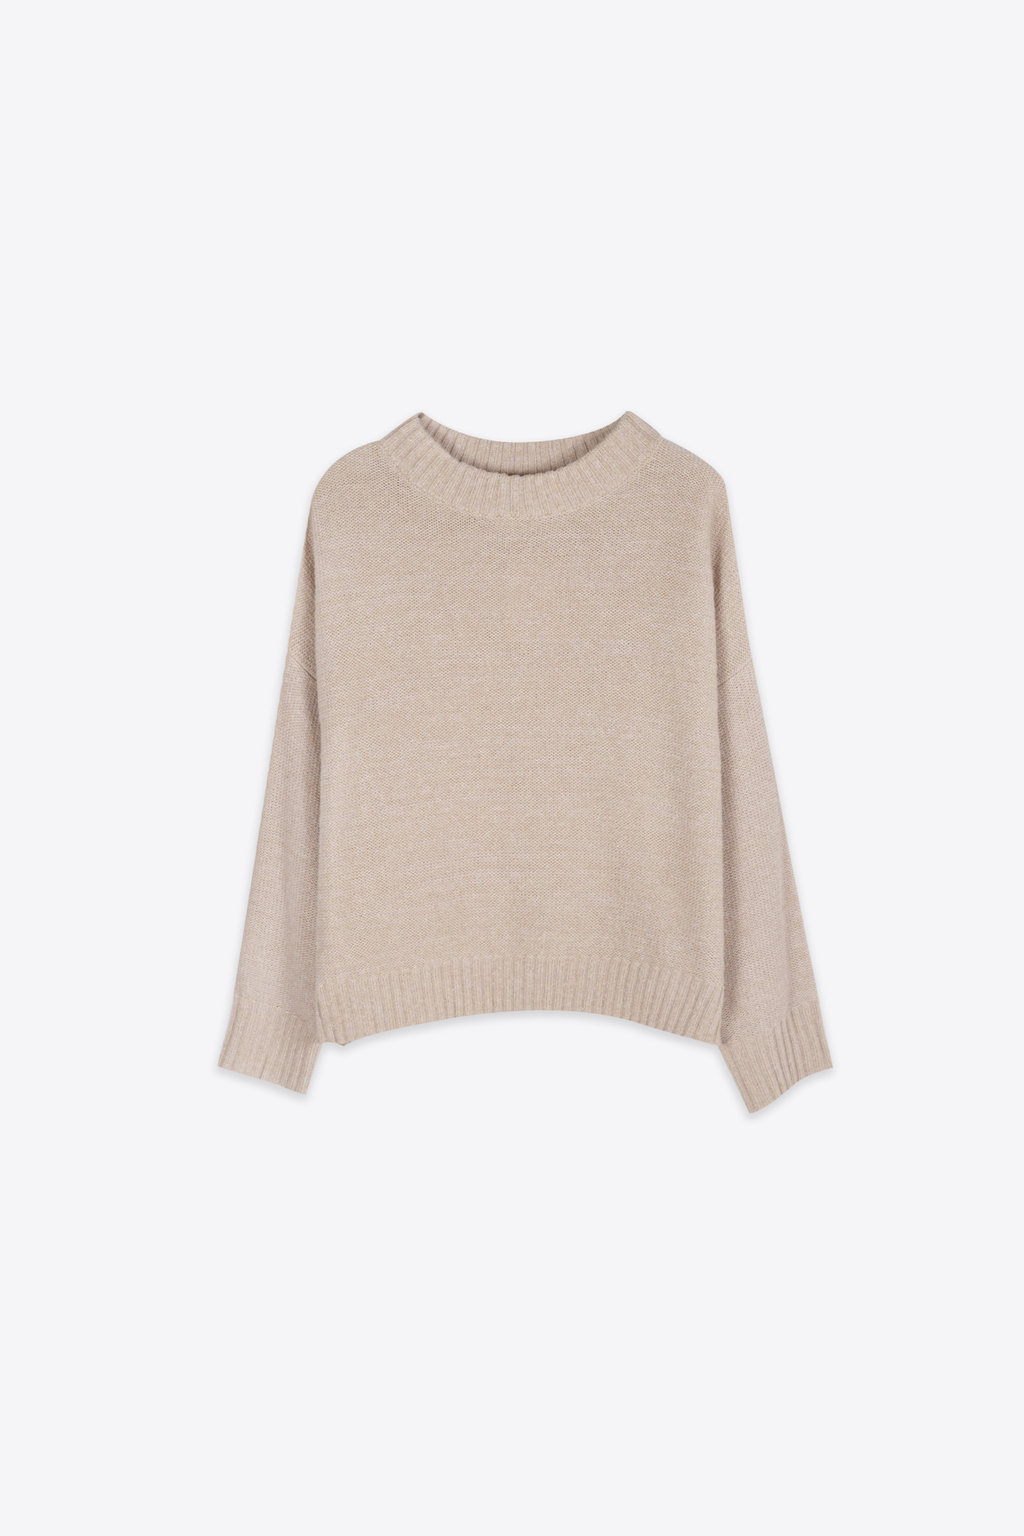 Sweater 2107 Heather Beige 5